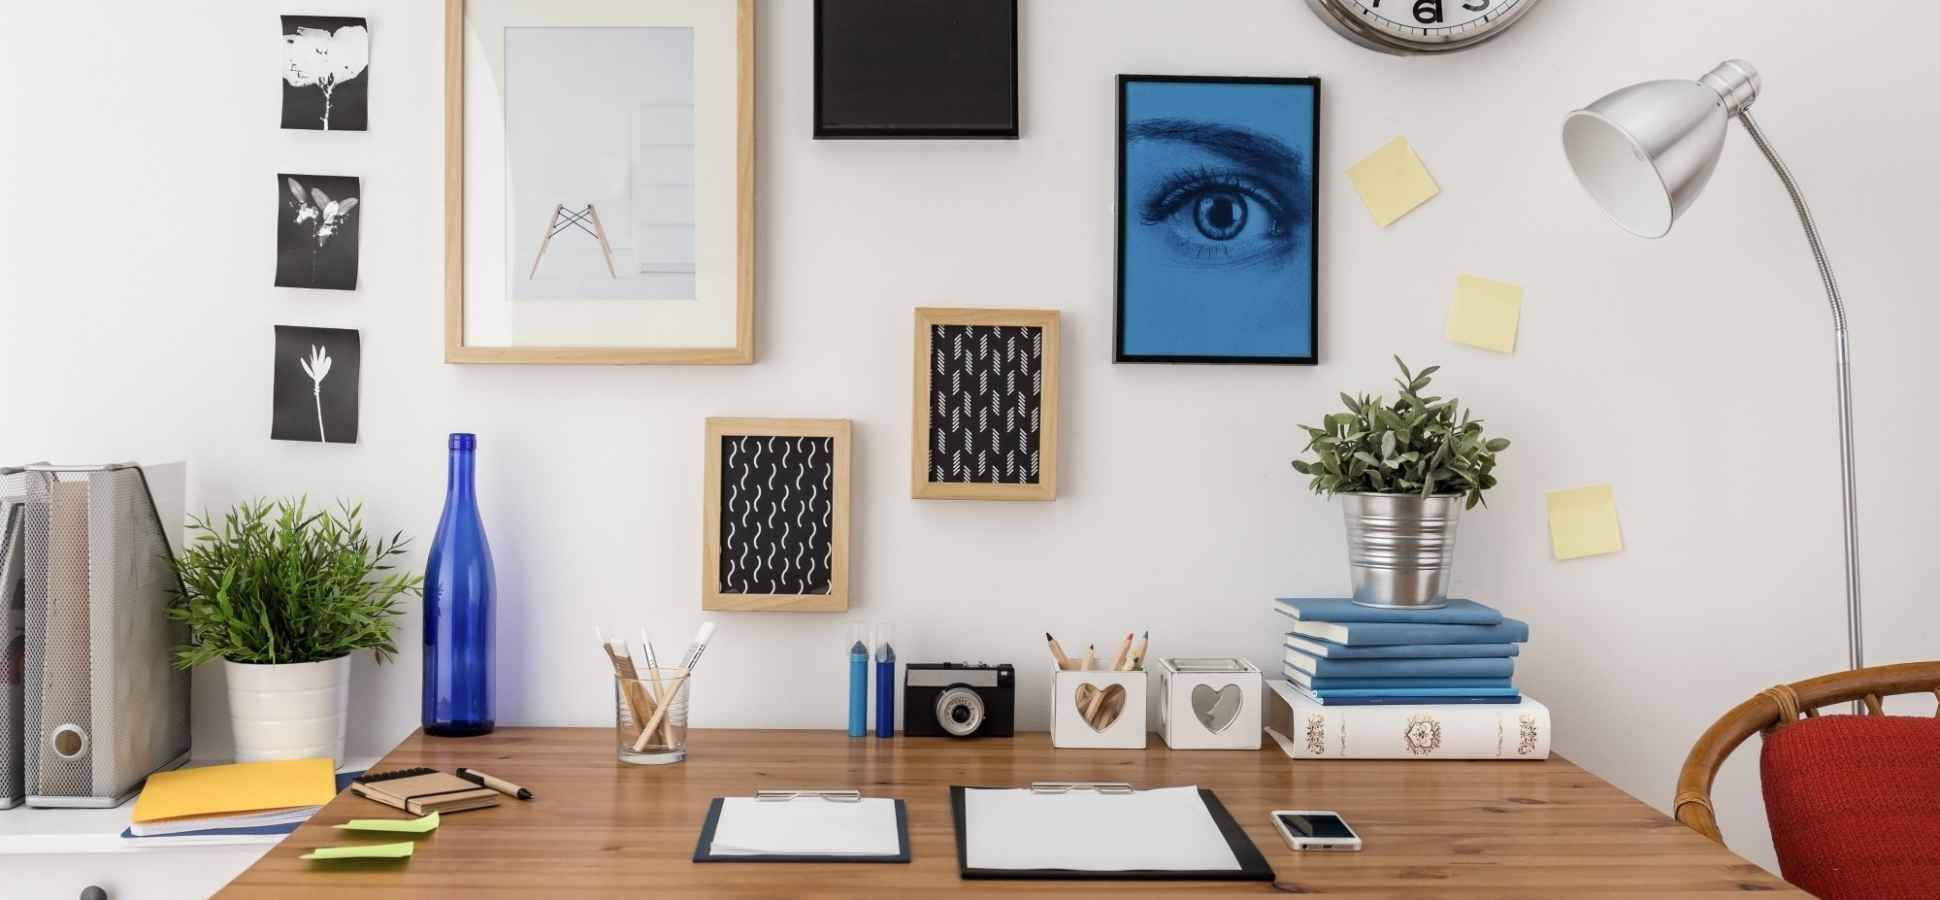 6 Powerfully Effective Hacks to Get Organized Right Now